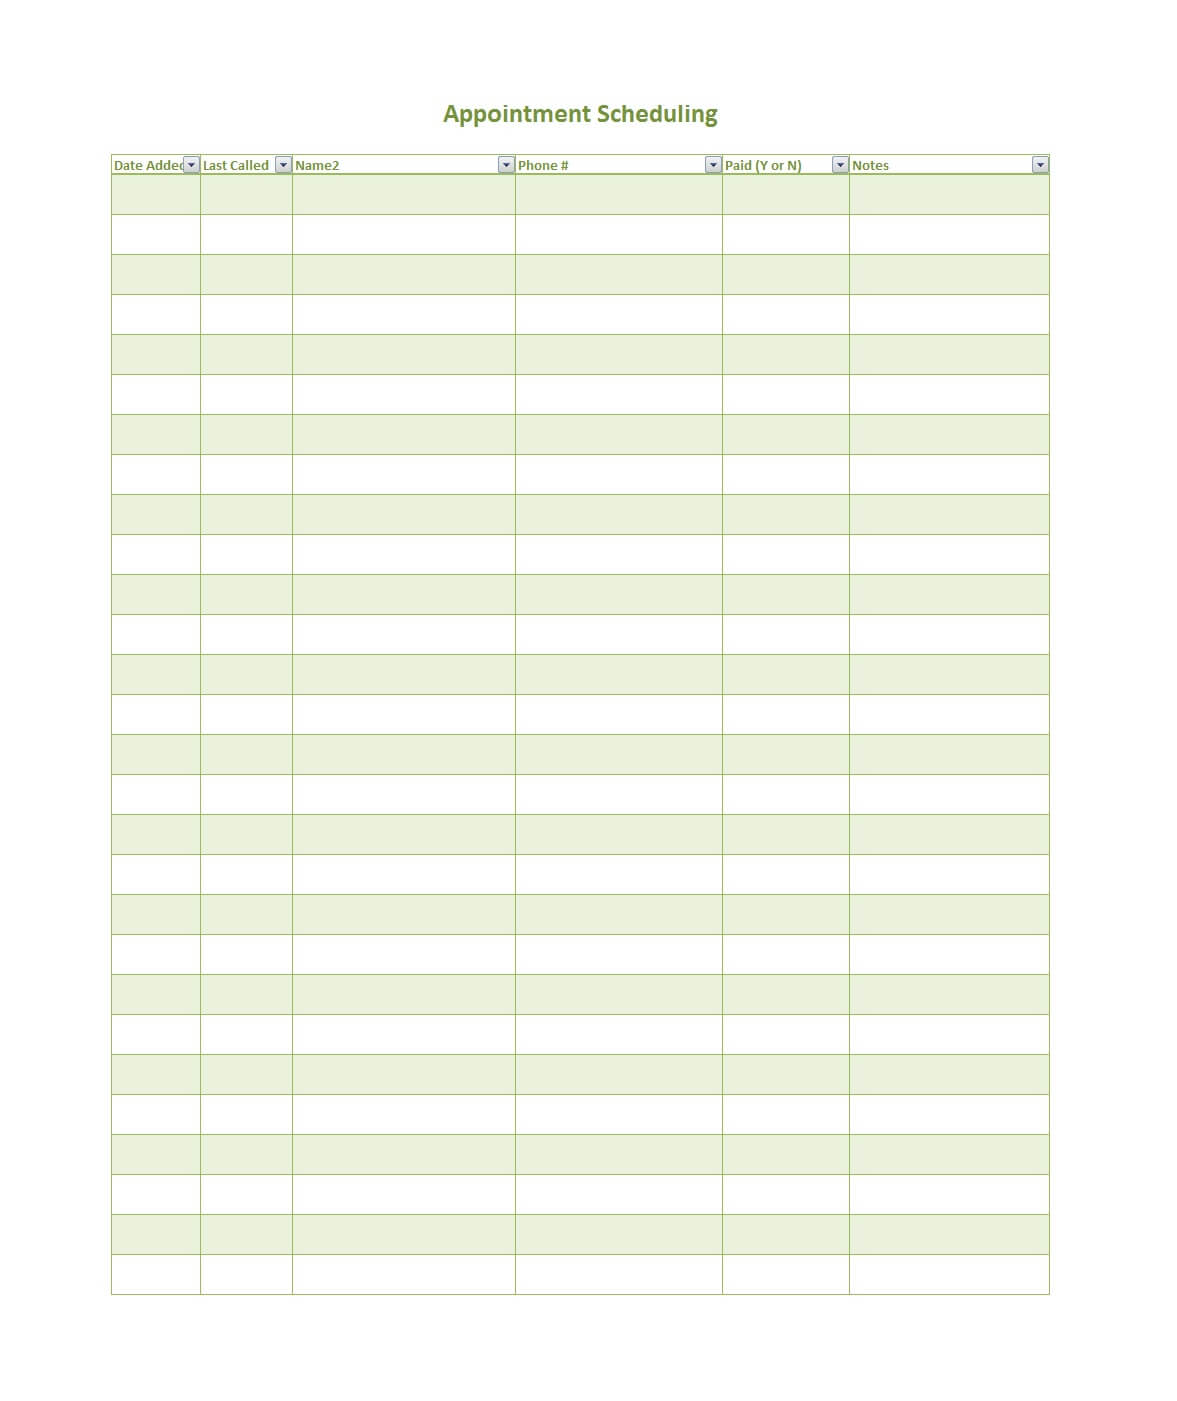 020 Printable Appointment Schedule Templates Regarding Sheet Throughout Appointment Sheet Template Word